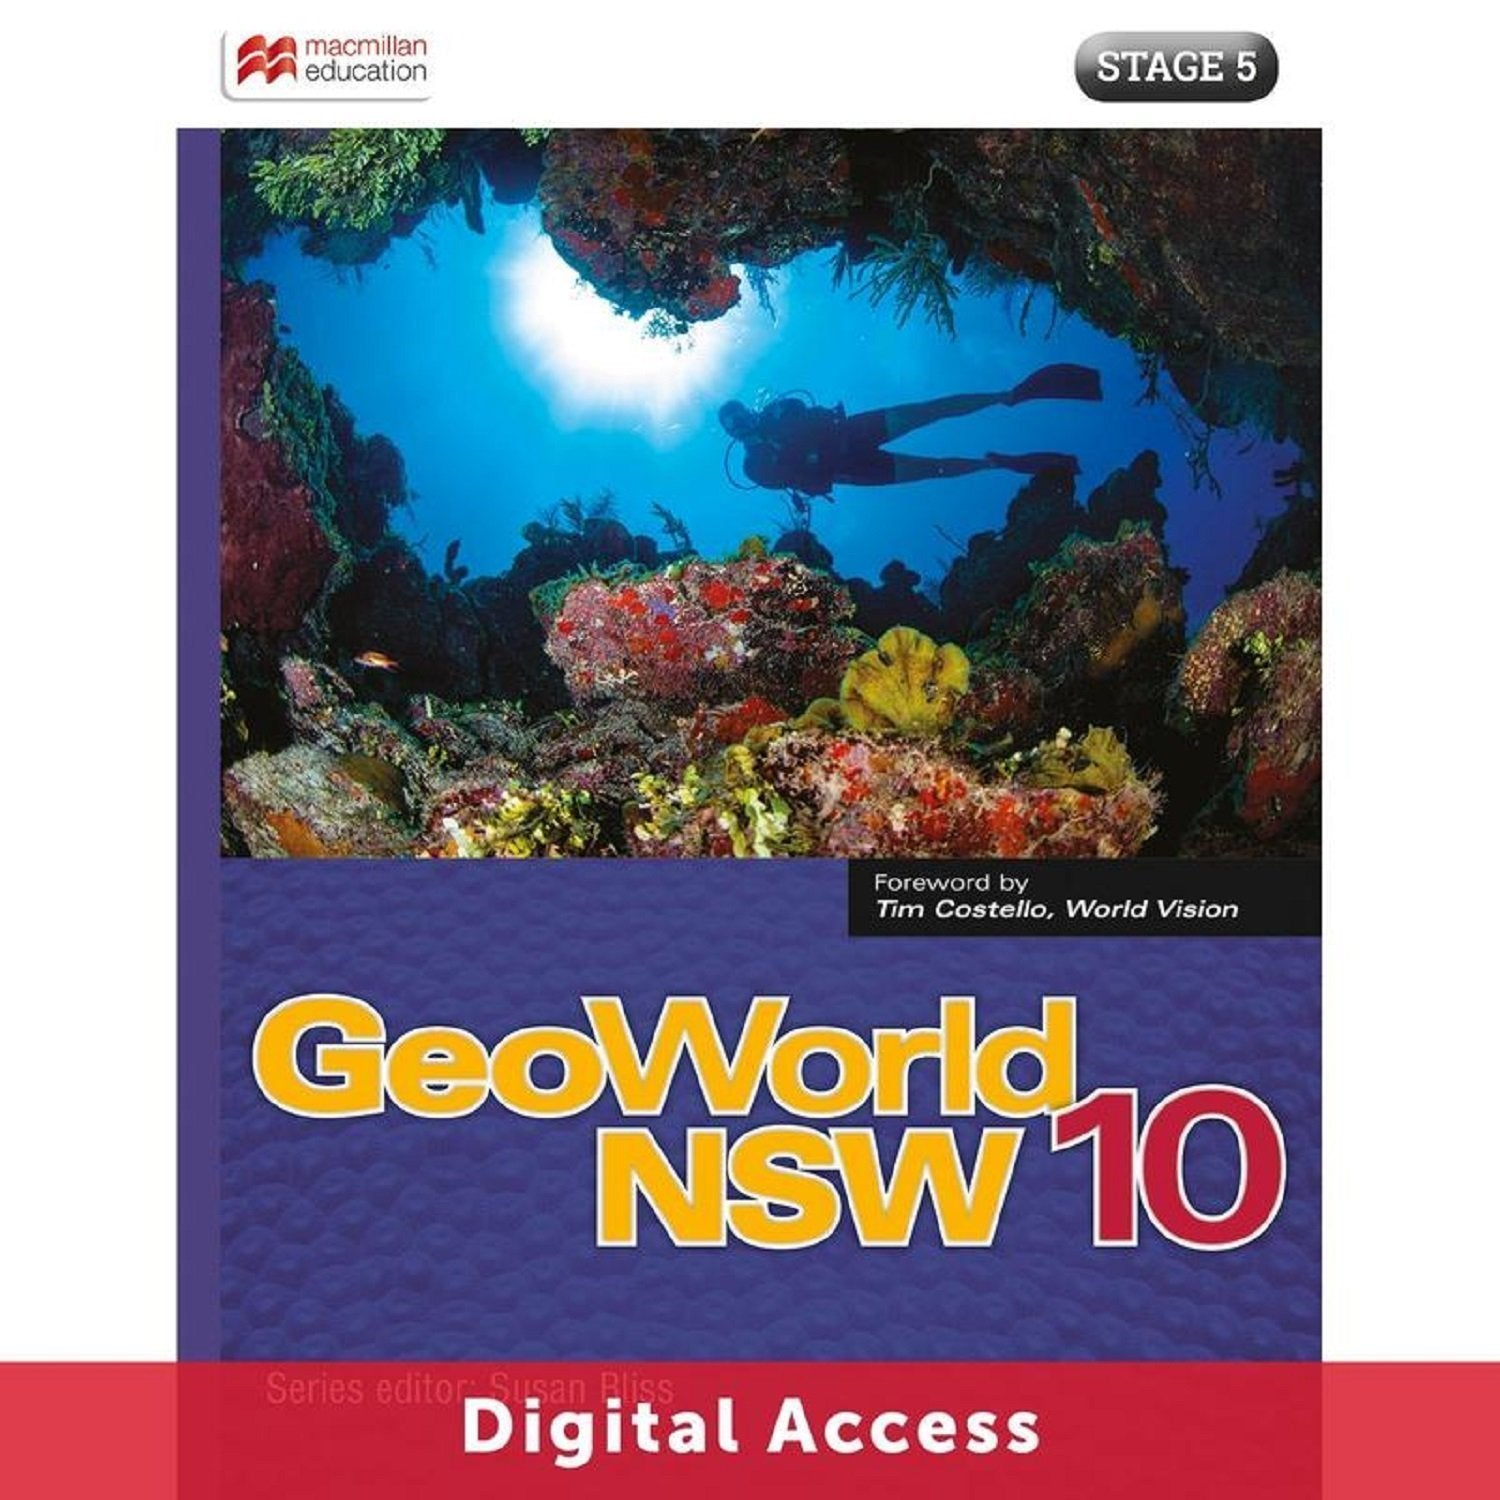 GeoWorld NSW 10 Student Digital access